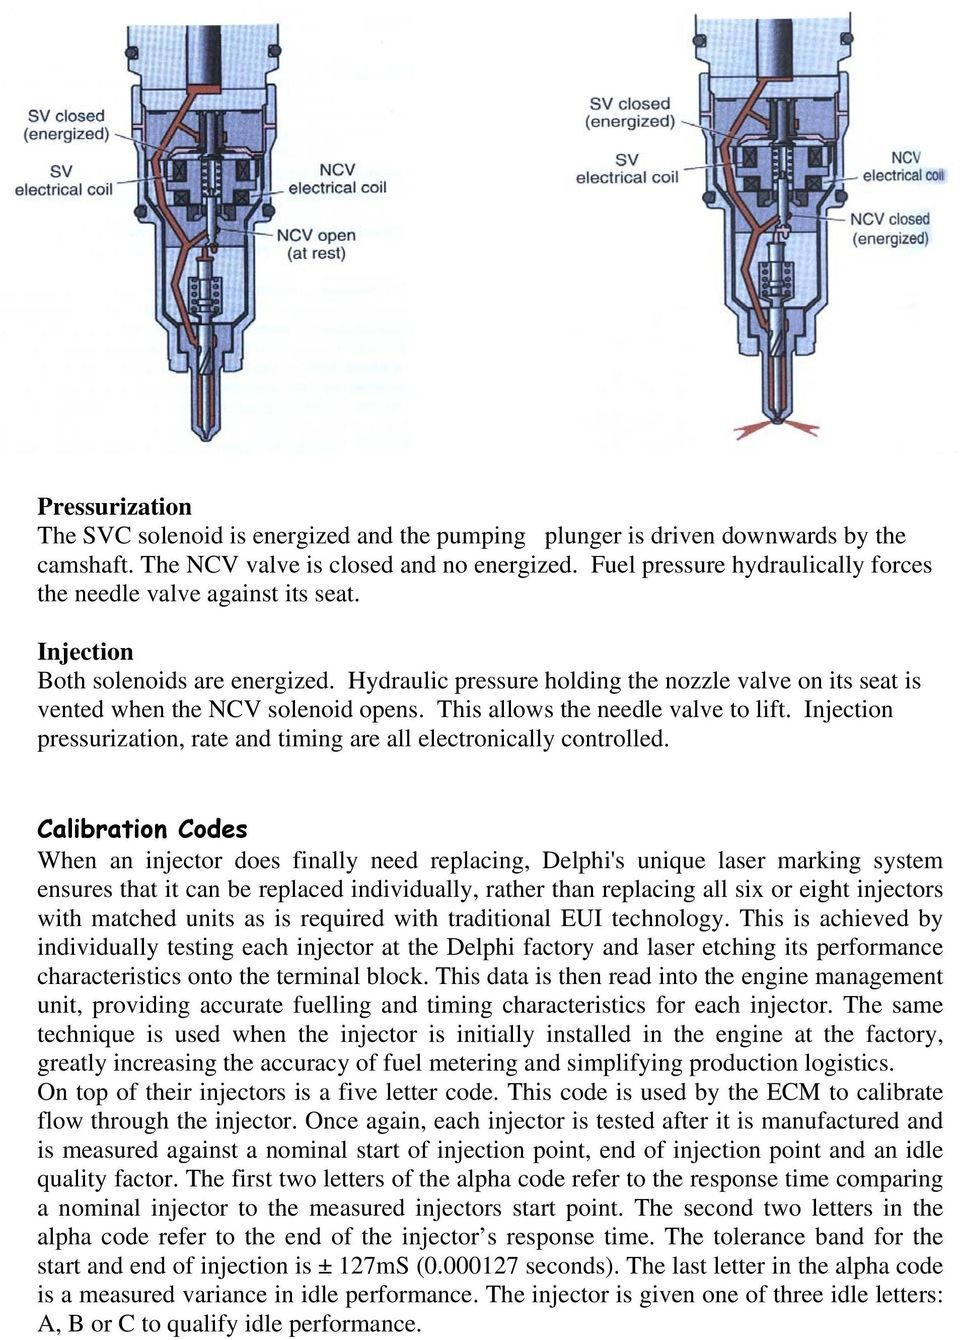 Delphi E3 Diesel Electronic Unit Injector Pdf Harley Davidson Fuel Pressure Diagram Hydraulic Holding The Nozzle Valve On Its Seat Is Vented When Ncv Solenoid Opens